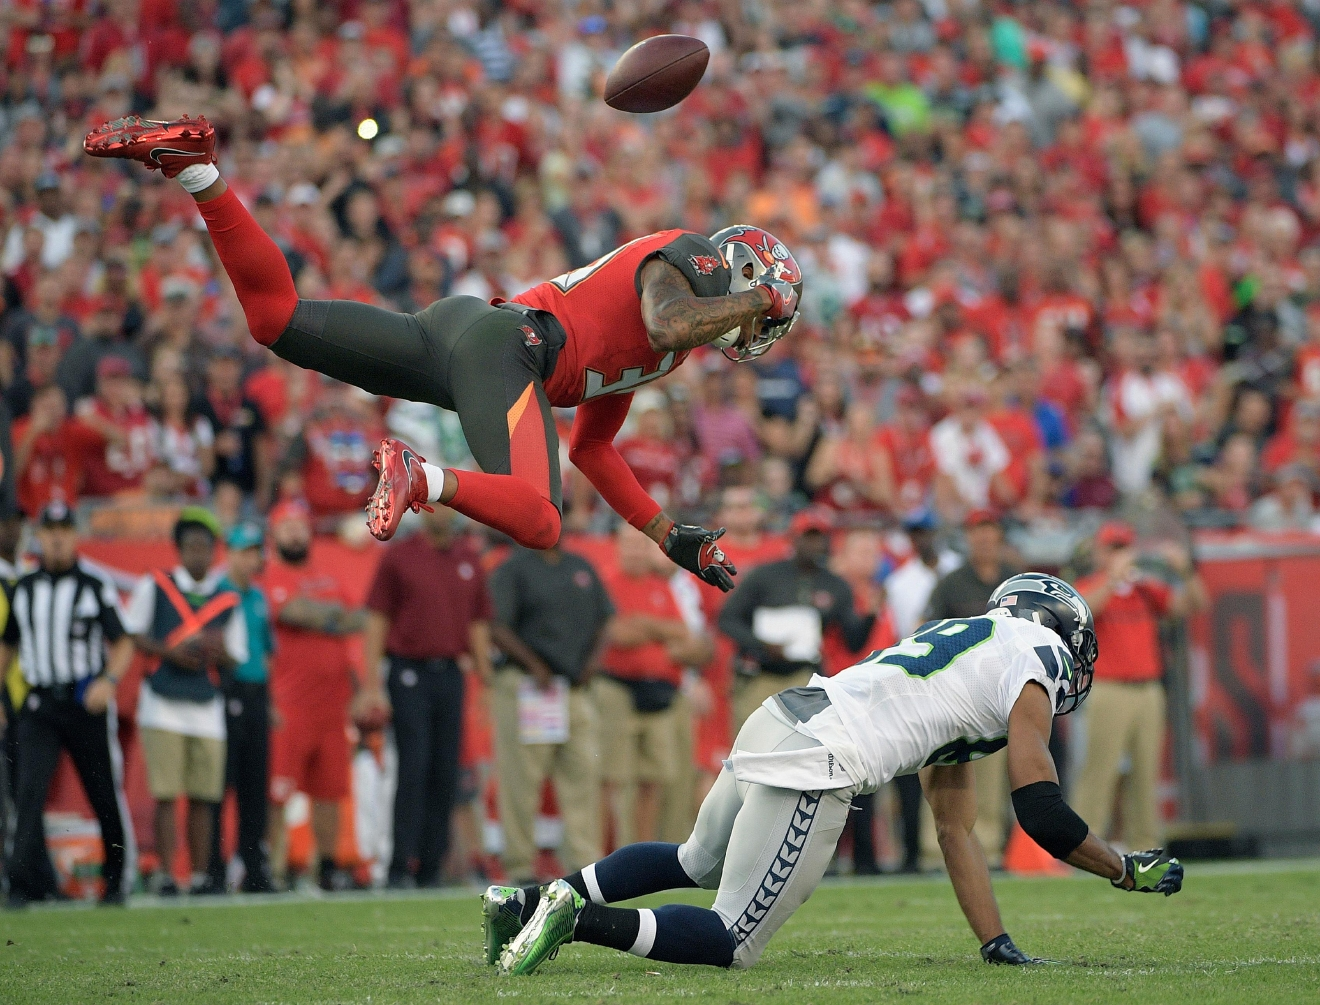 Seattle Seahawks wide receiver Doug Baldwin (89) loses the football as he is hit by Tampa Bay Buccaneers free safety Bradley McDougald (30) during the second quarter of an NFL football game Sunday, Nov. 27, 2016, in Tampa, Fla. McDougald was called for a pass interference penalty. (AP Photo/Phelan Ebenhack)